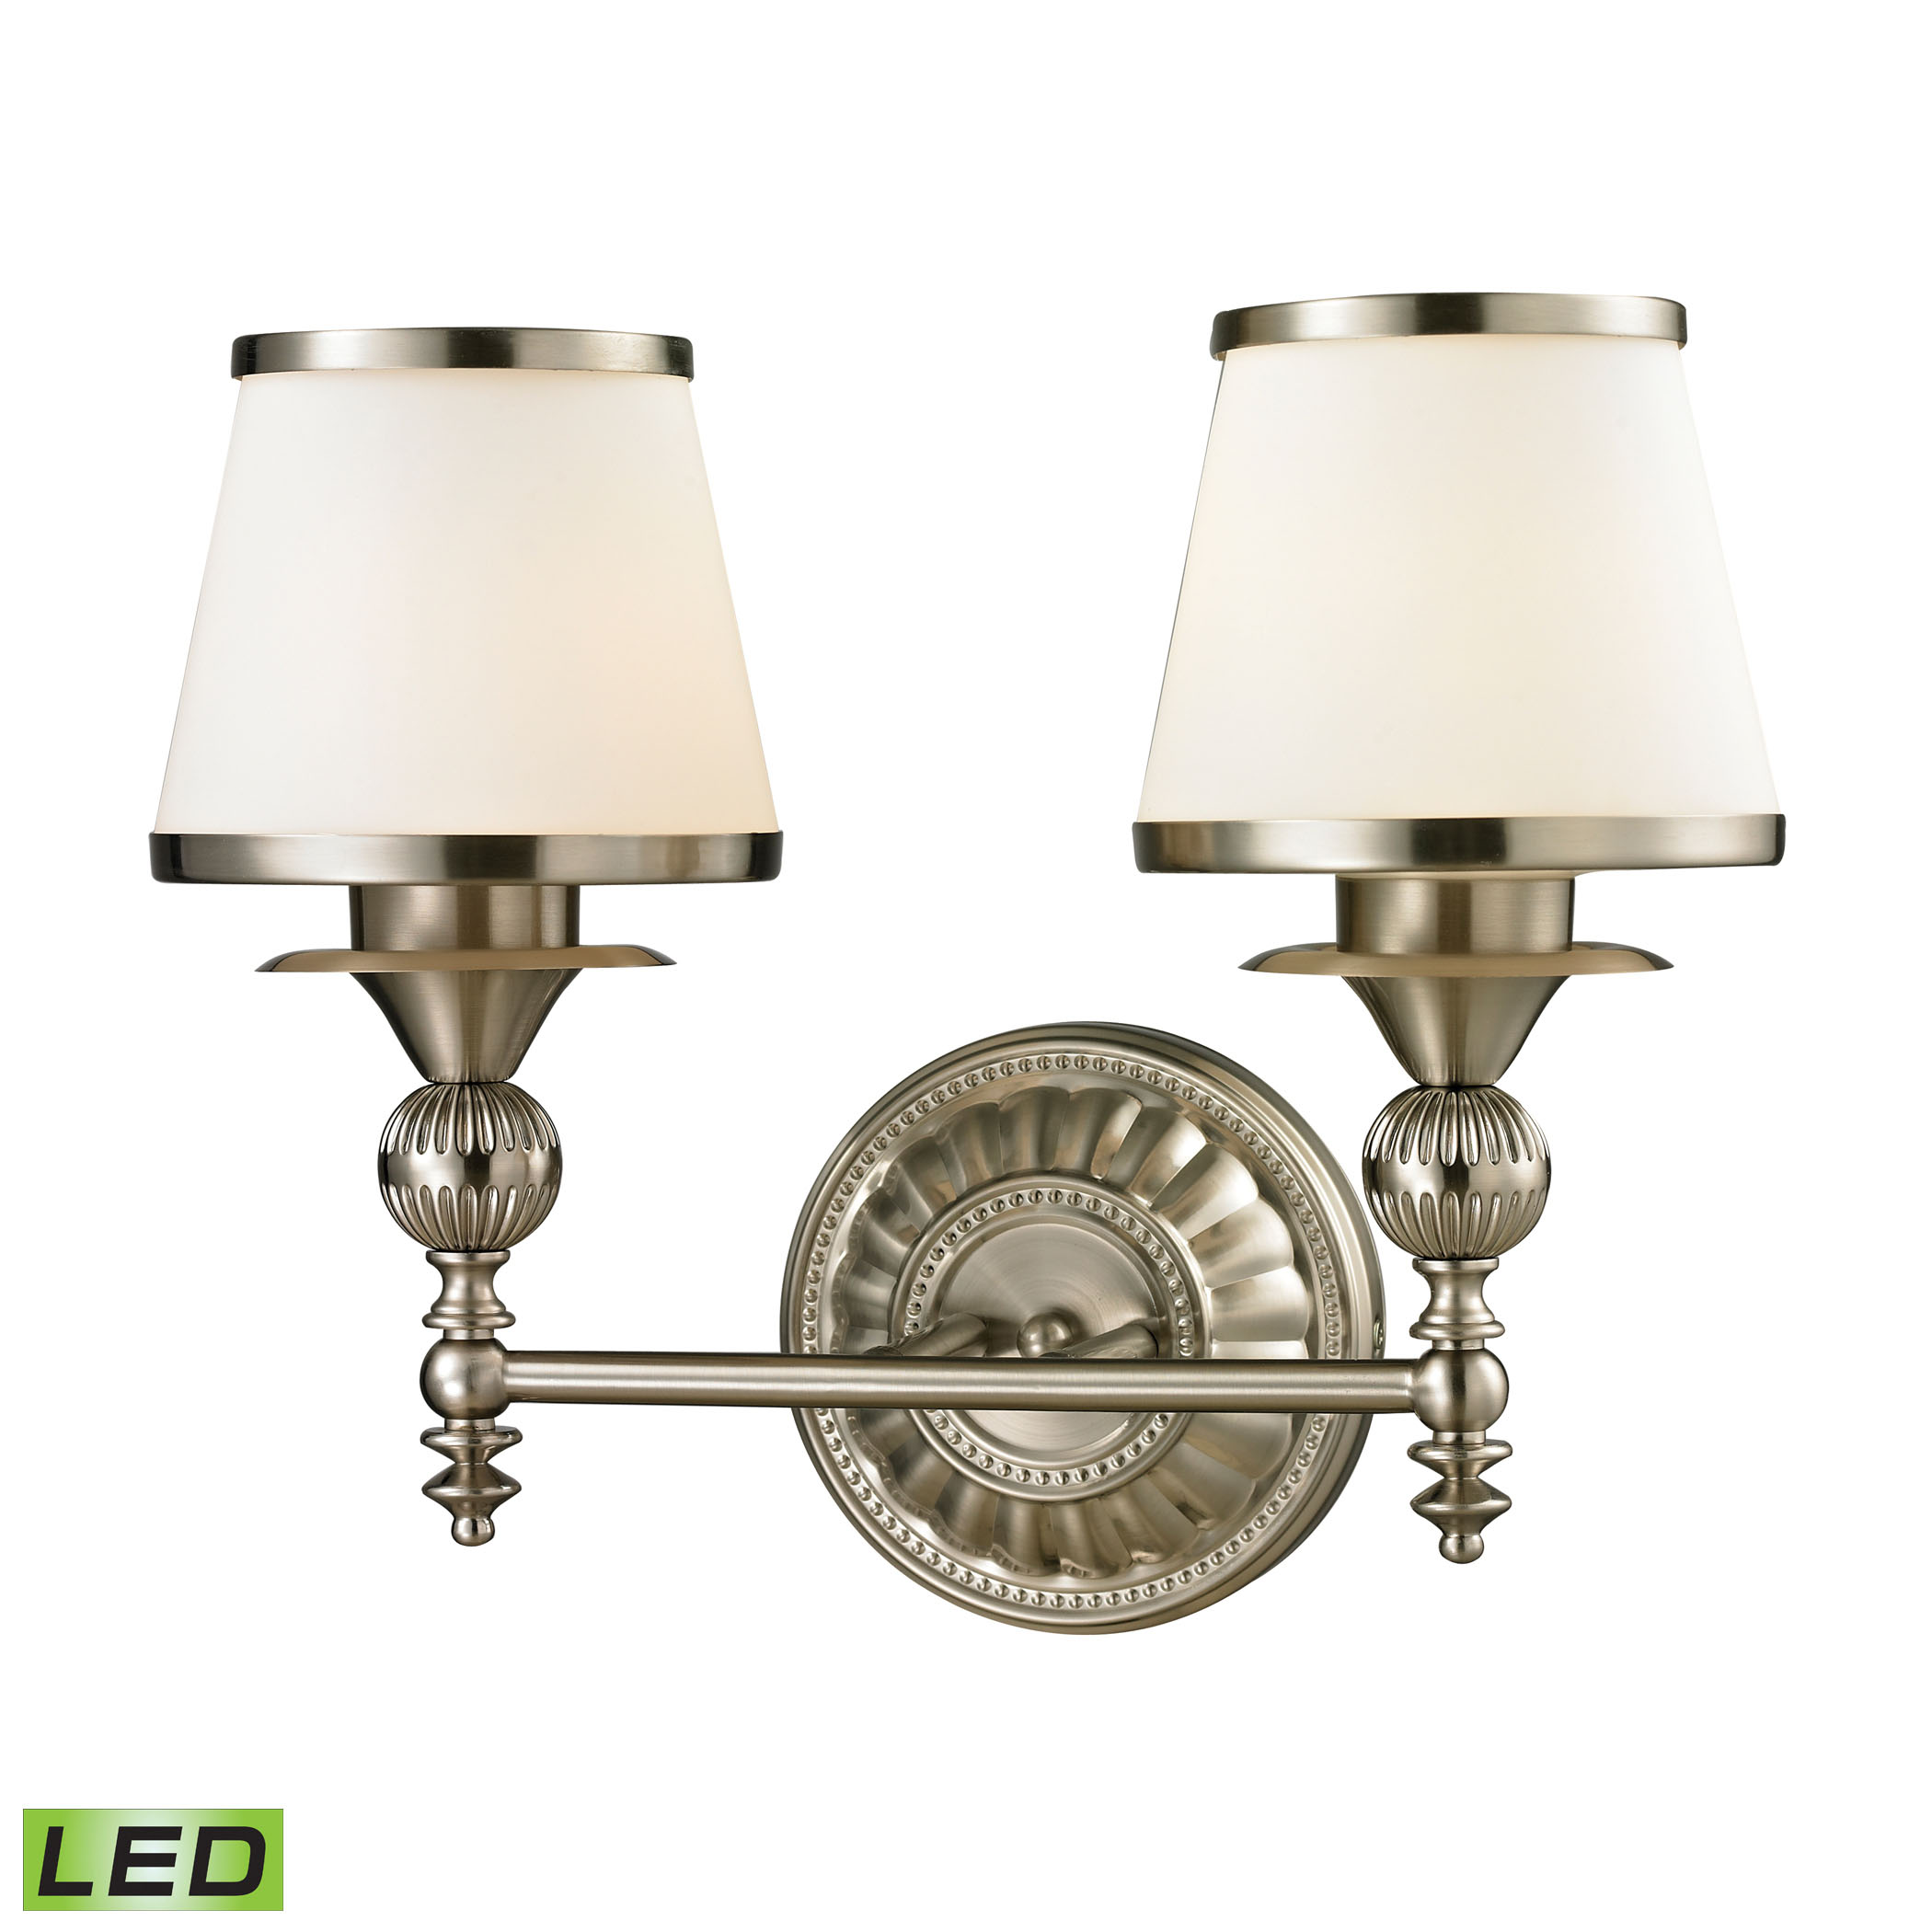 Smithfield Collection 2 Light Bath in Brushed Nickel - LED, 800 Lumens (1600 Lumens Total) with Full